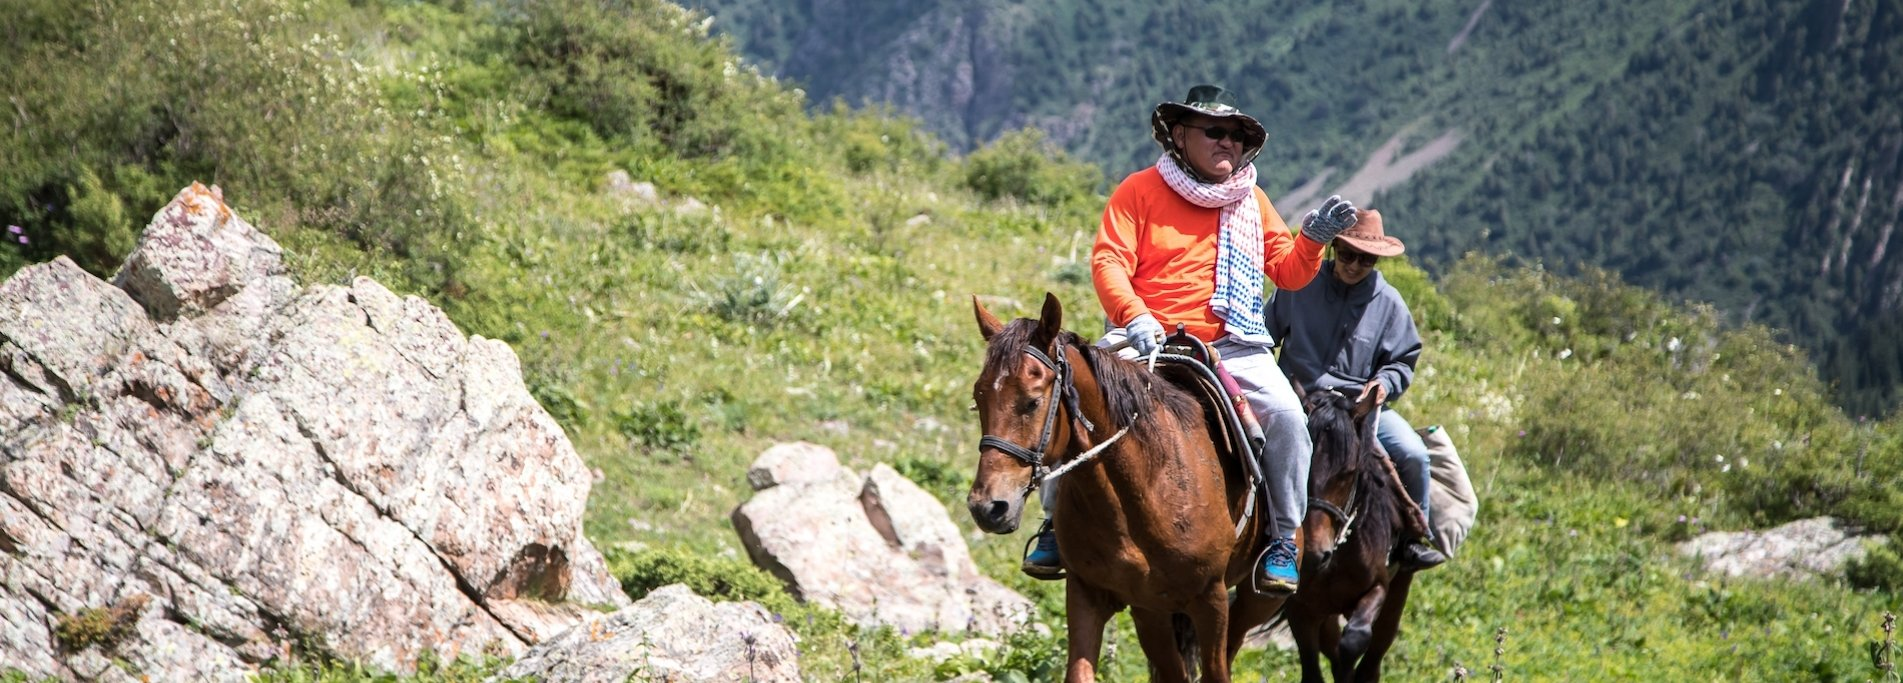 Horse riding in Tien-Shan mountains - Trip to Shamsy gorge